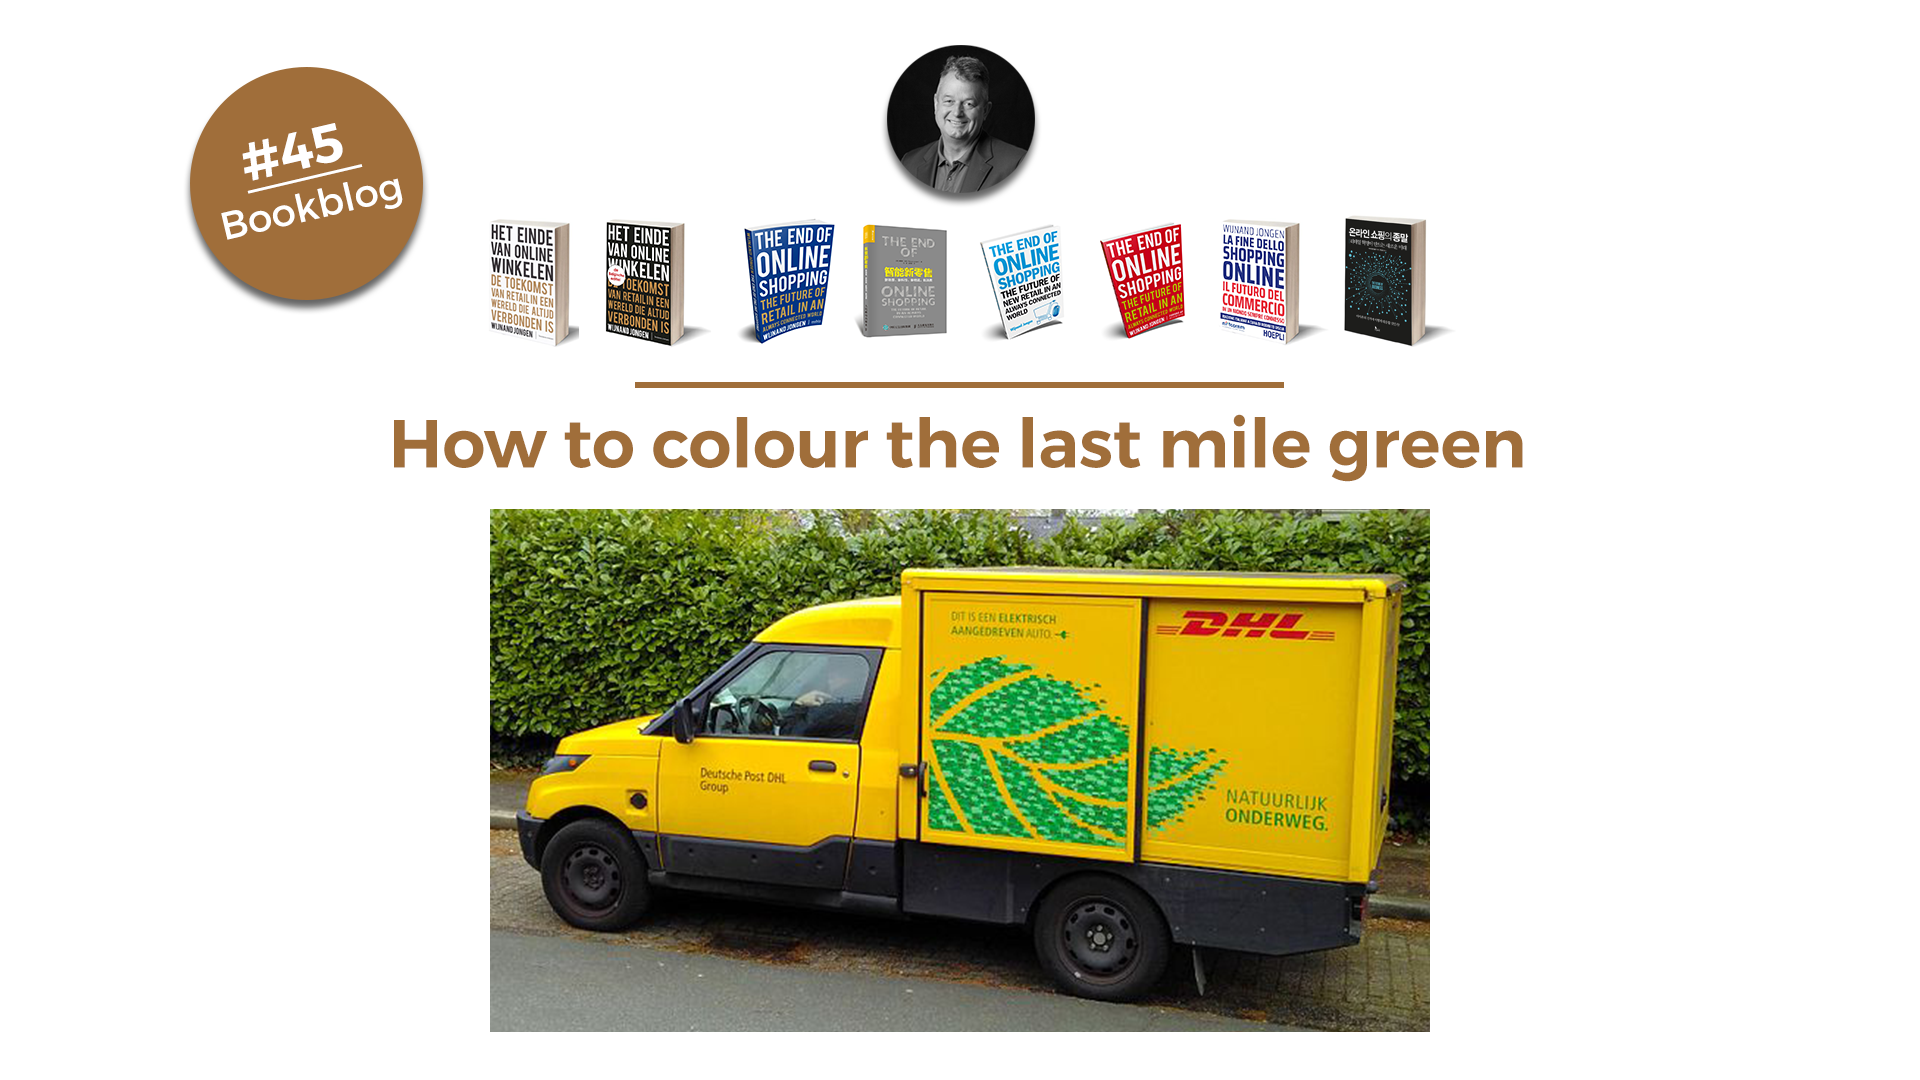 How to colour the last mile green